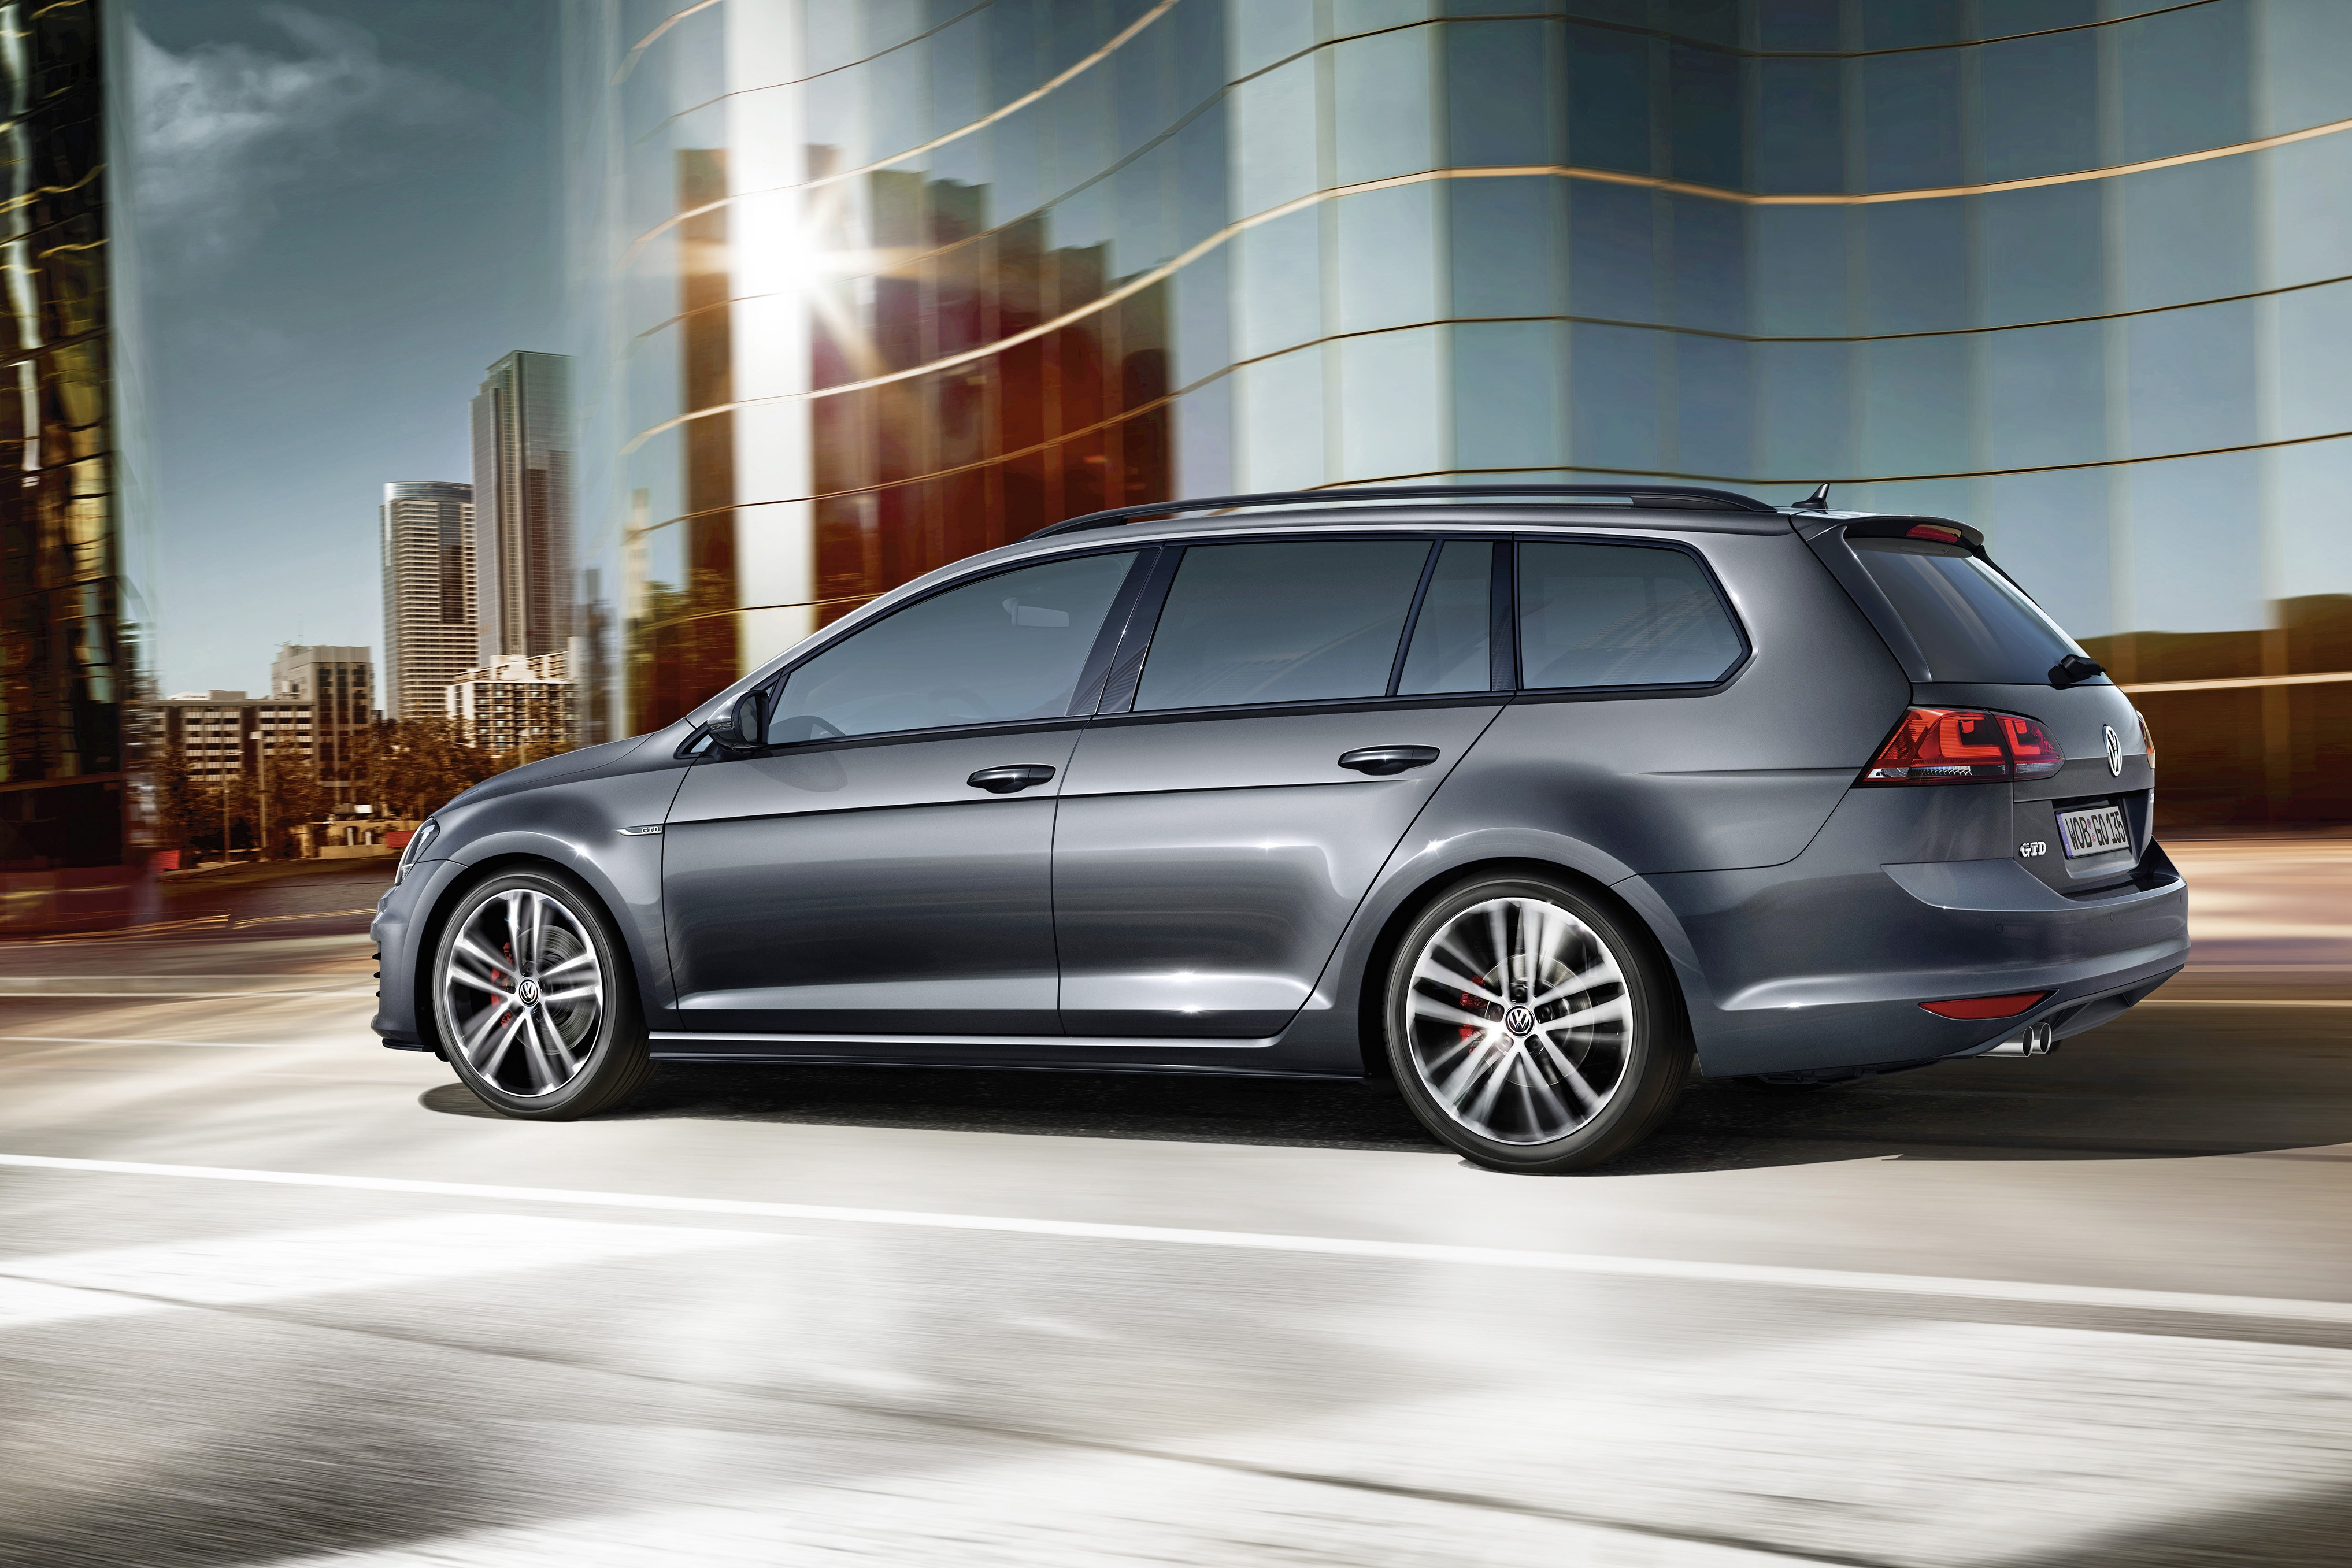 vw unveils 2015 golf gtd variant to fight peugeot 308 gt and ford focus st diesel rivals